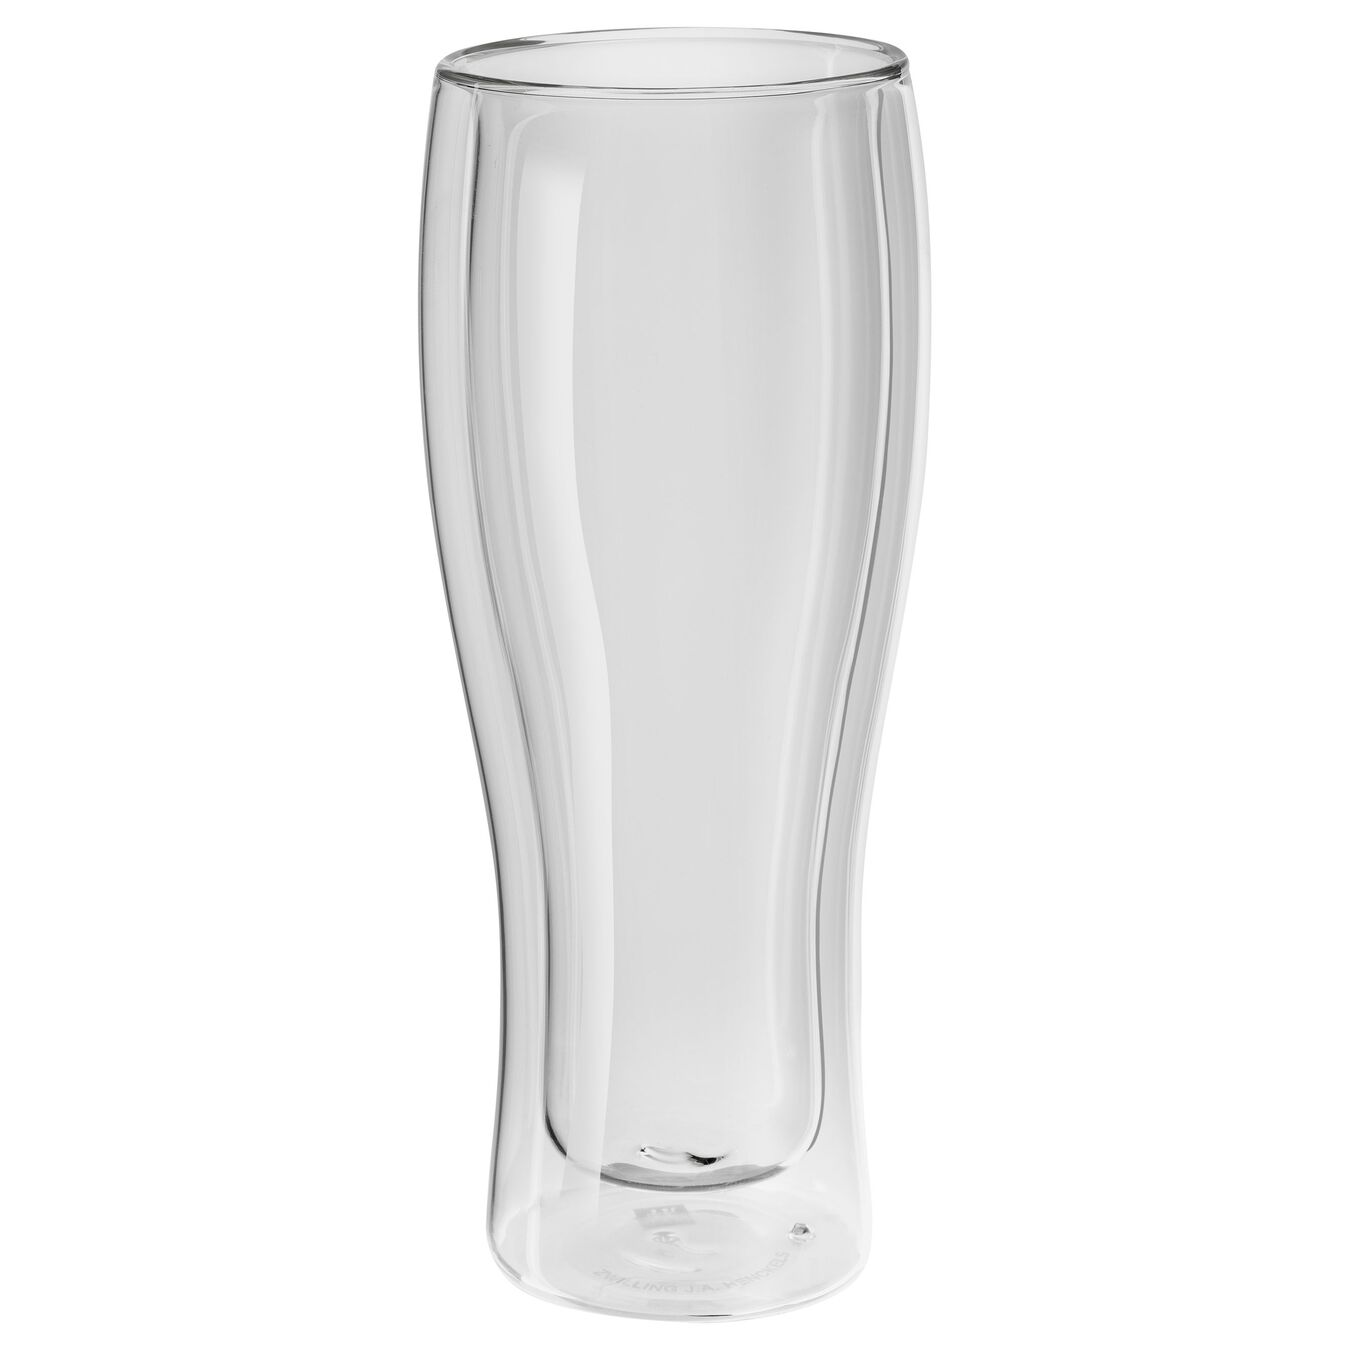 Double-Wall Pint & Pilsner Glass Set,,large 4